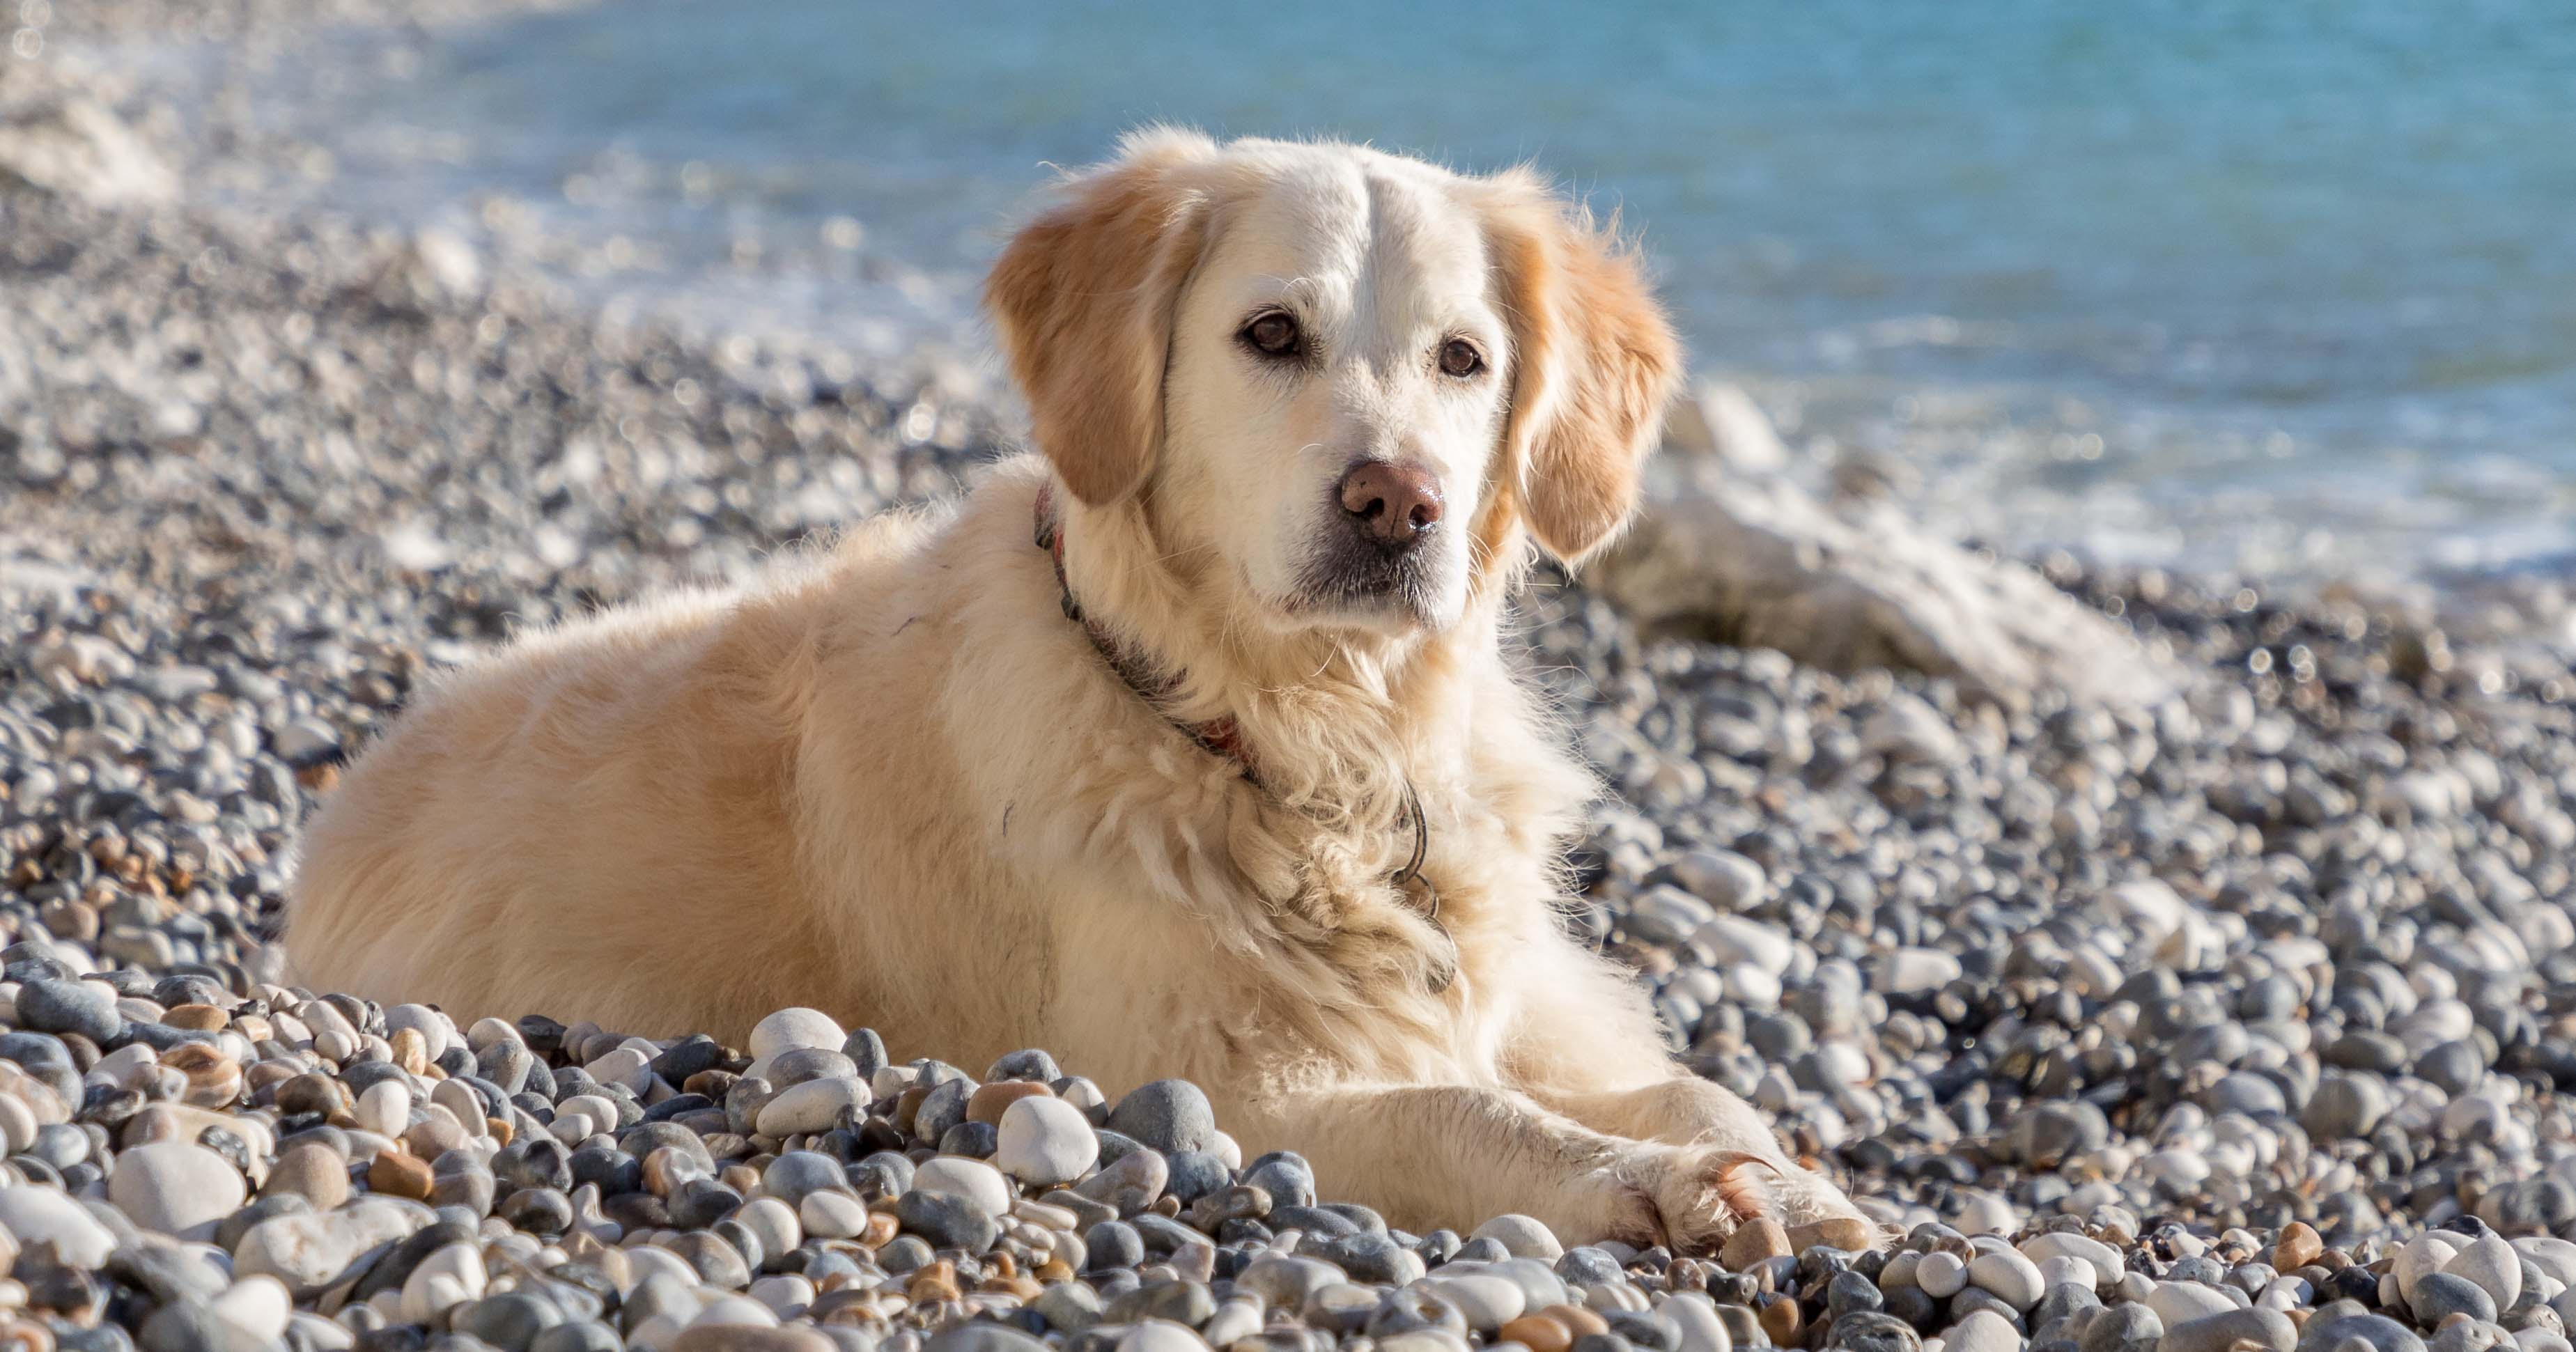 Causes of weight loss in golden retrievers